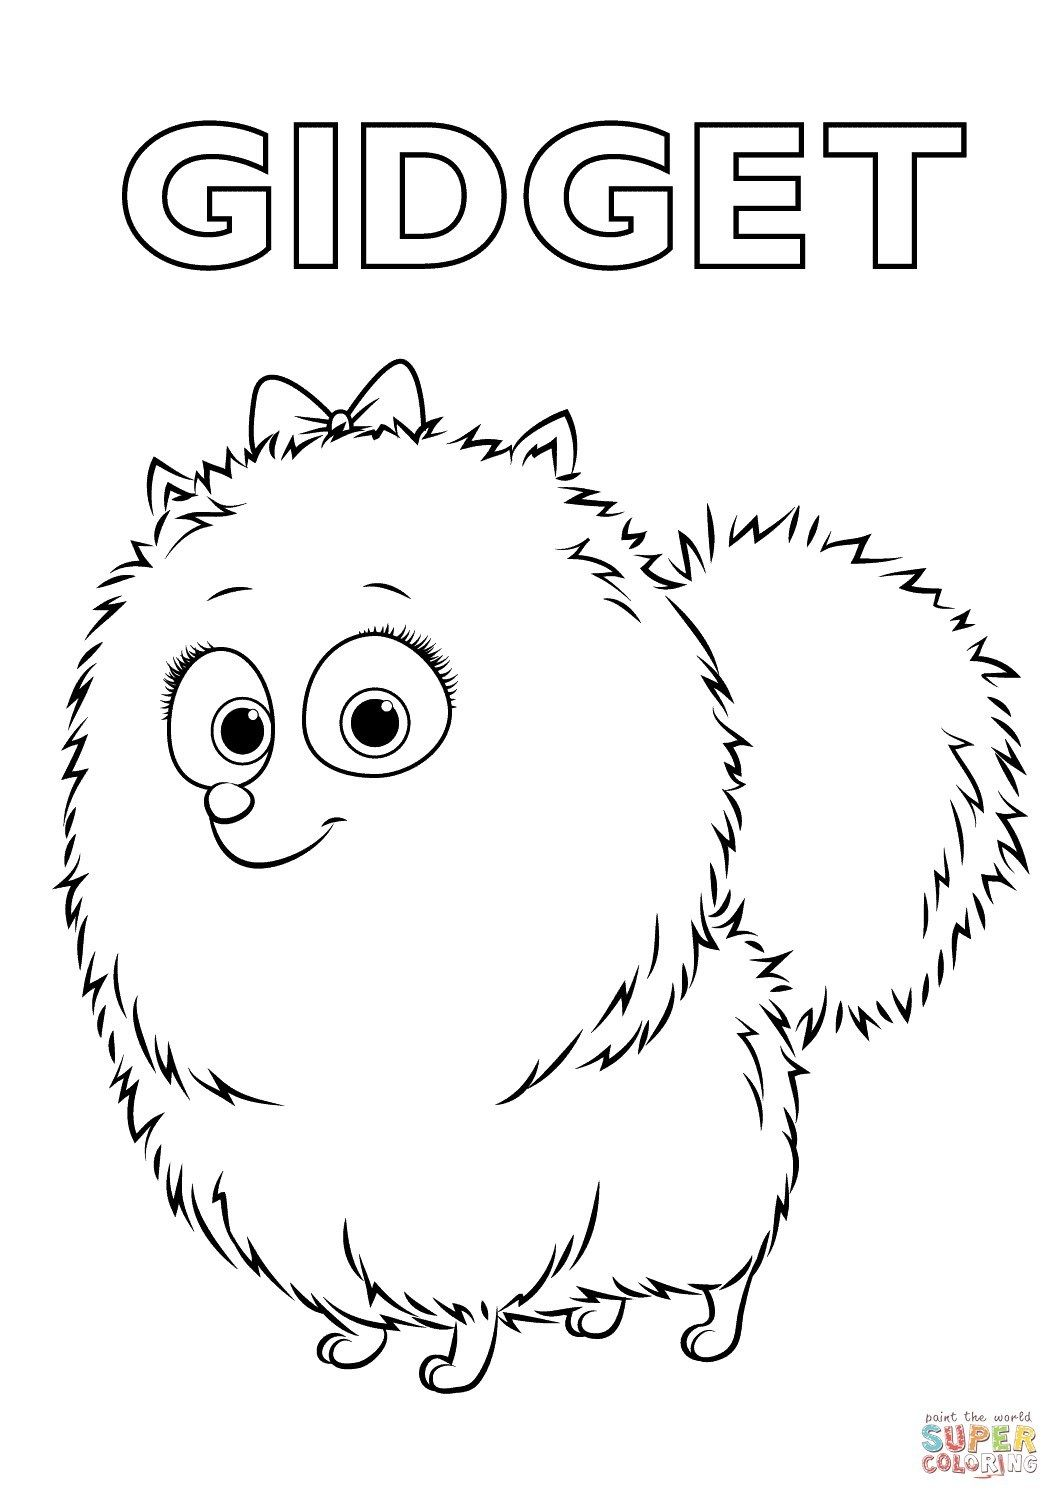 Pet Coloring Pages Gidget From The Secret Life Of Pets Coloring Page Free Printable Entitlementtrap Com Coloring Books Coloring Pages Secret Life Of Pets